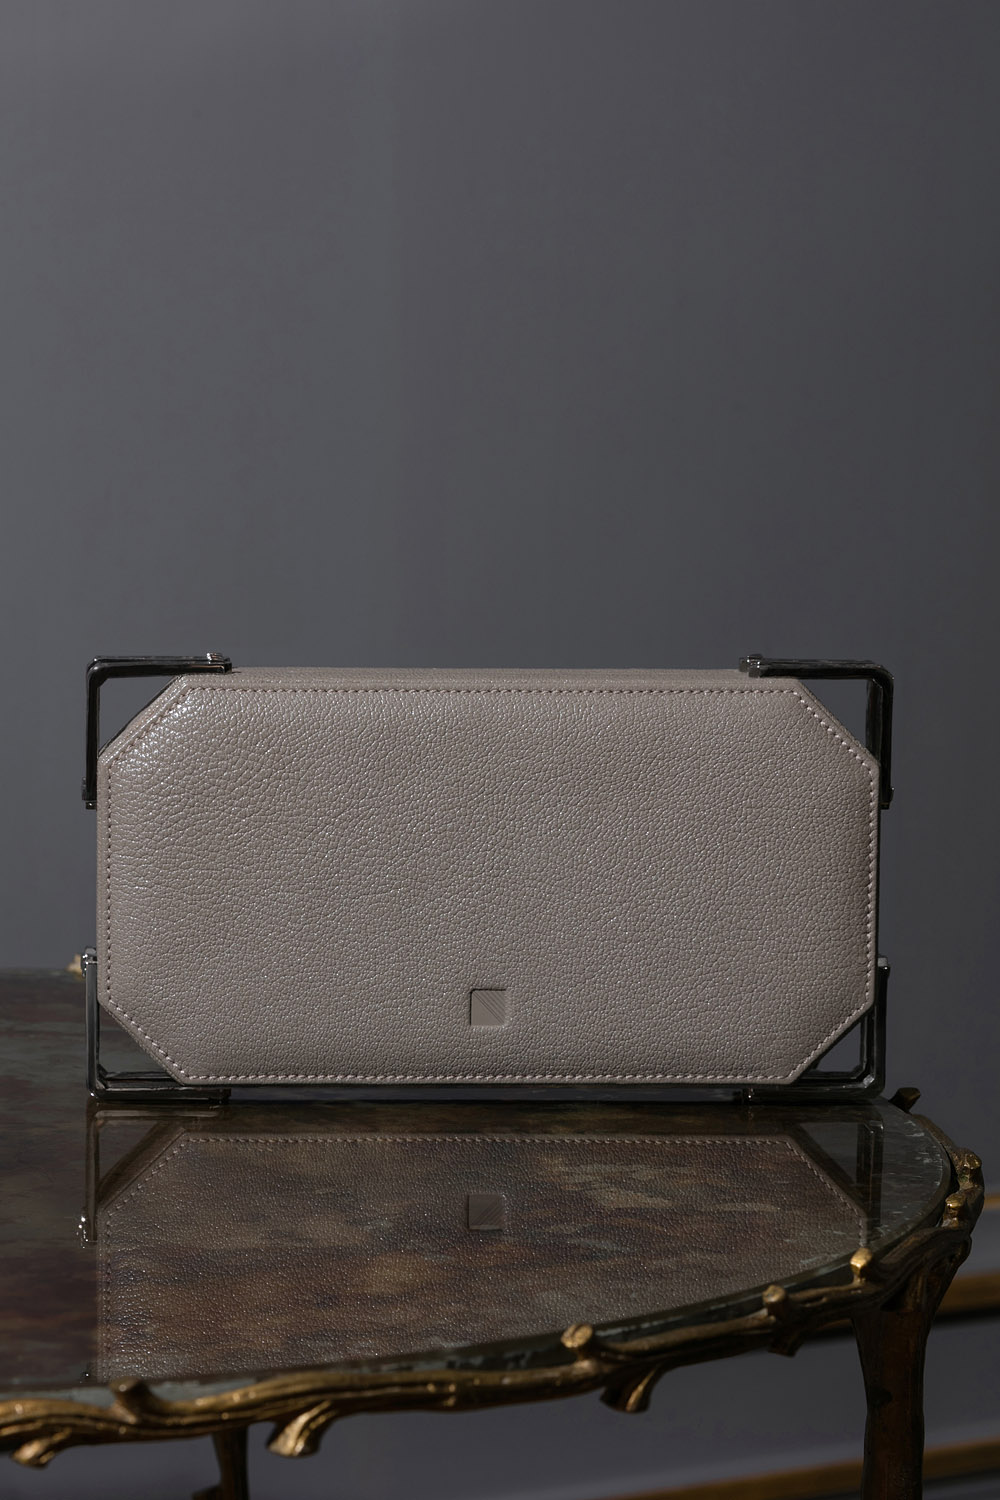 Grey geometric leather and metal clutch bag